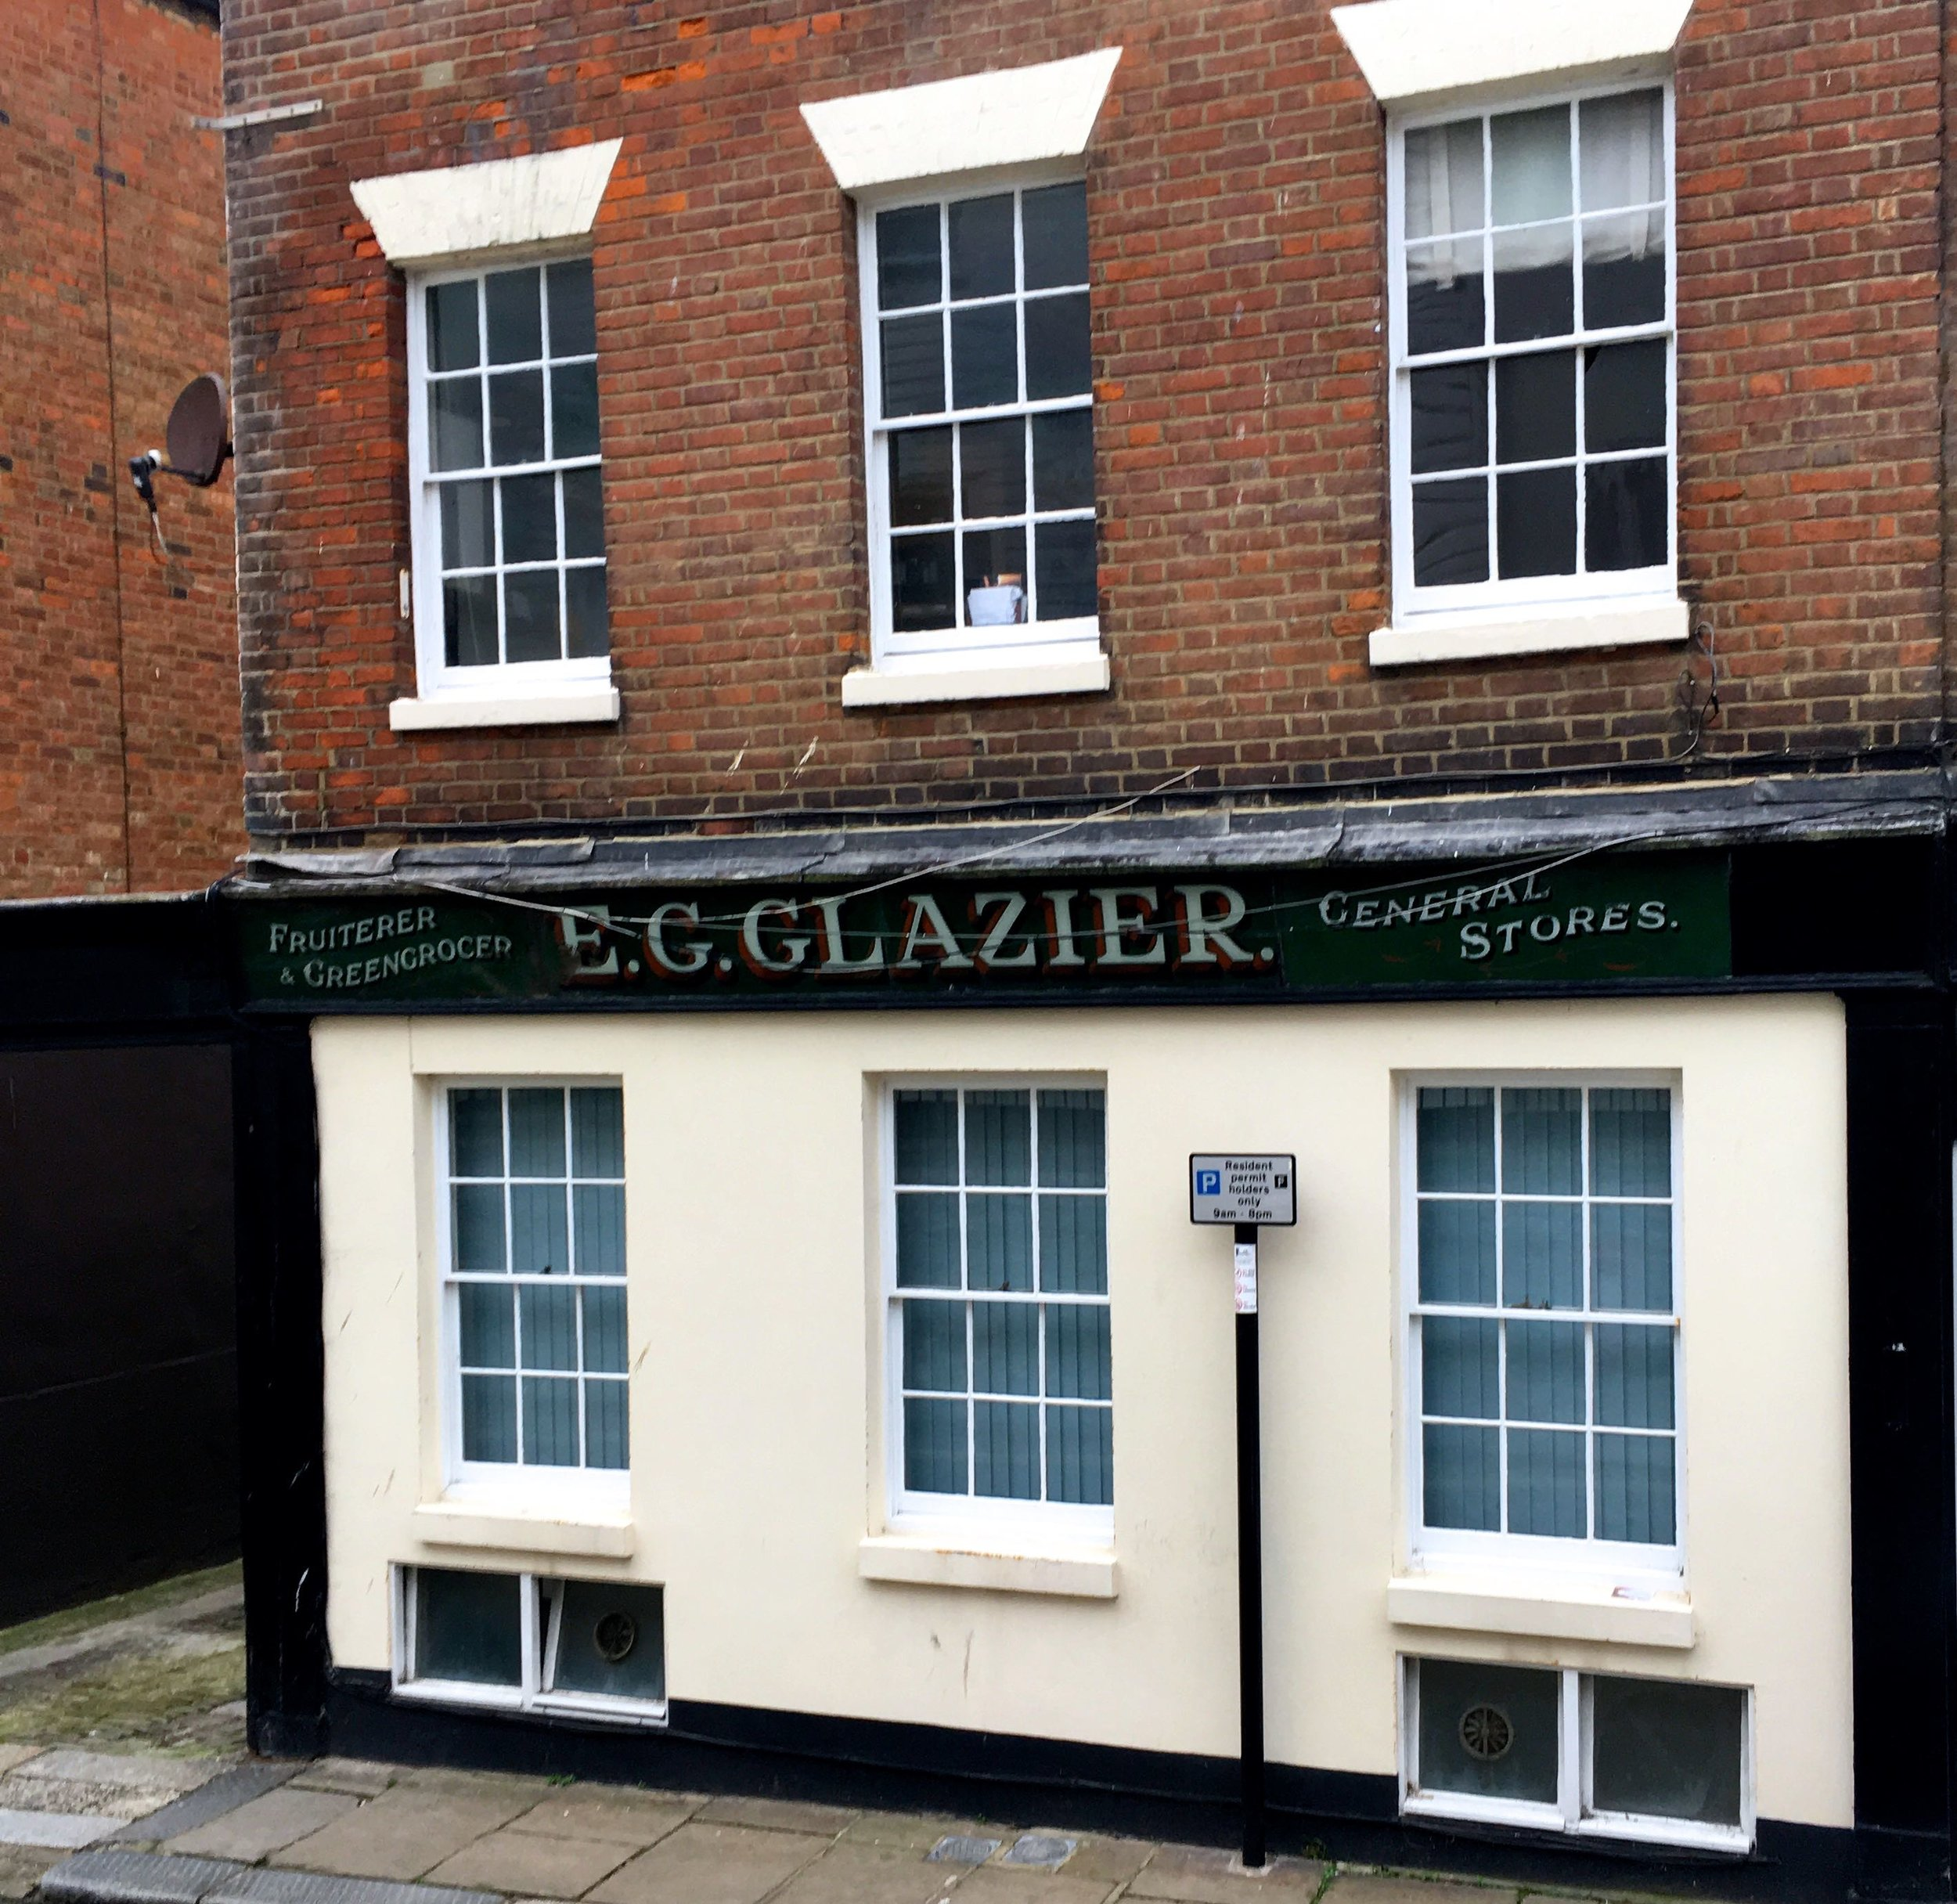 A traditional shop sign kept even though the building has been transformed